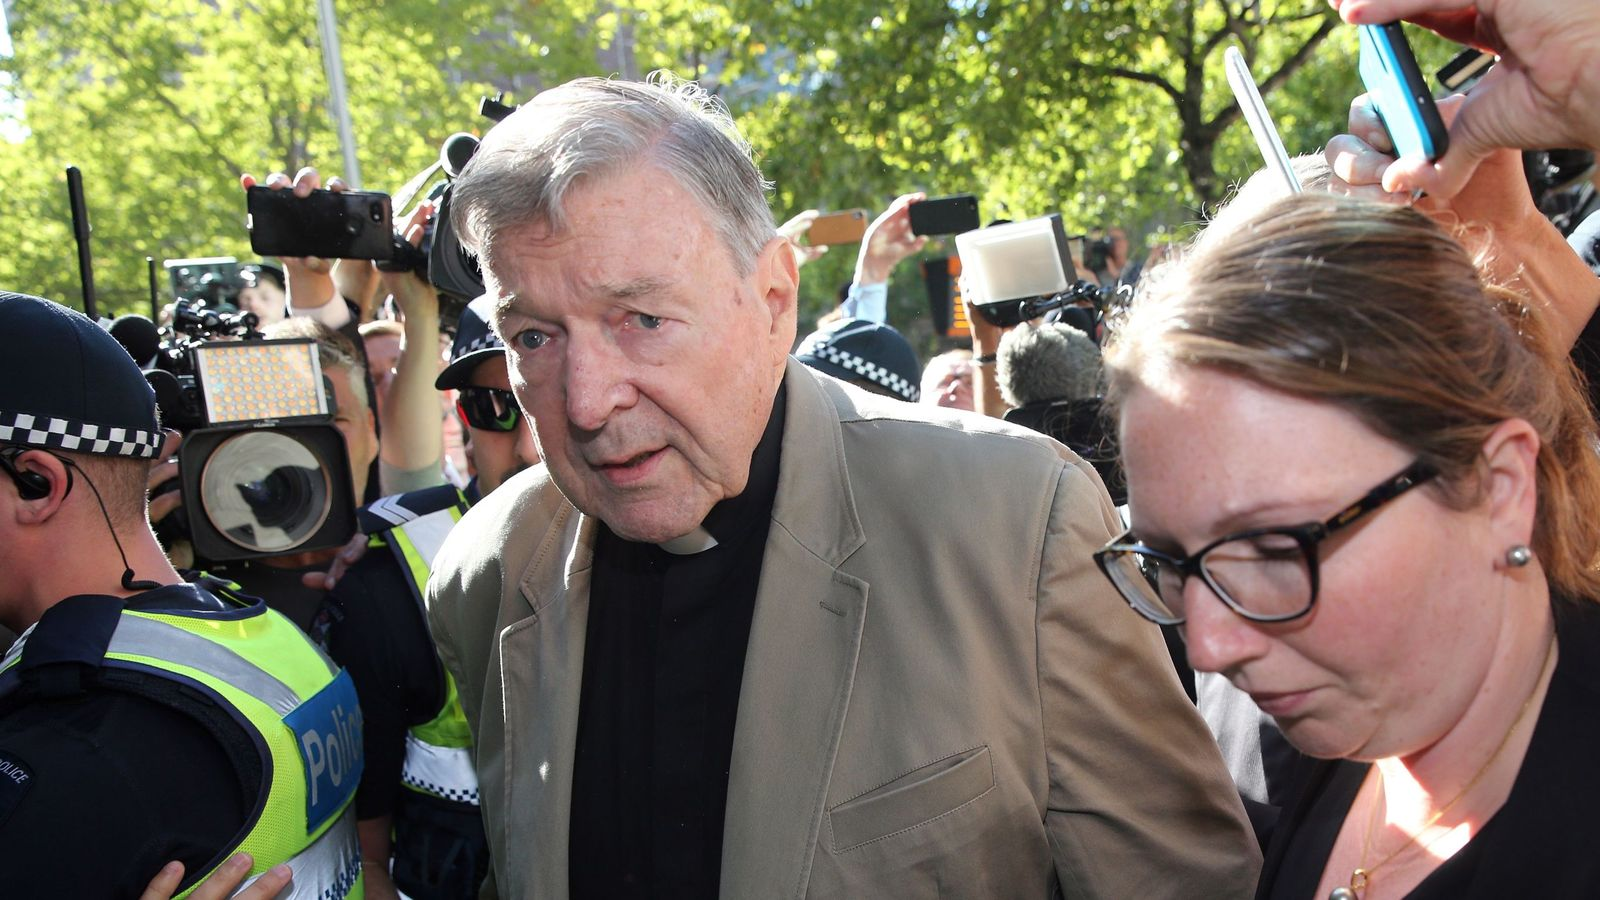 Vatican's banker loses child abuse conviction appeal